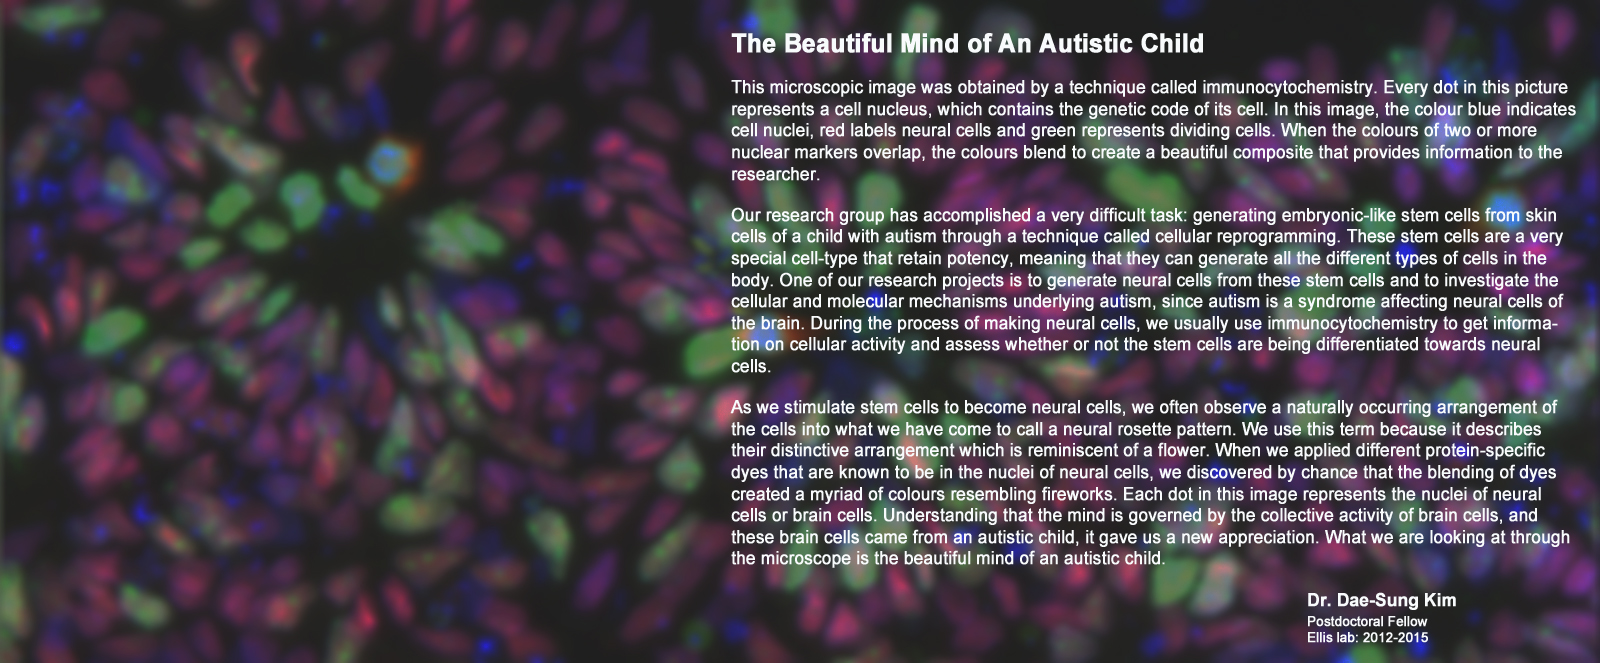 Beautiful mind of an autistic child